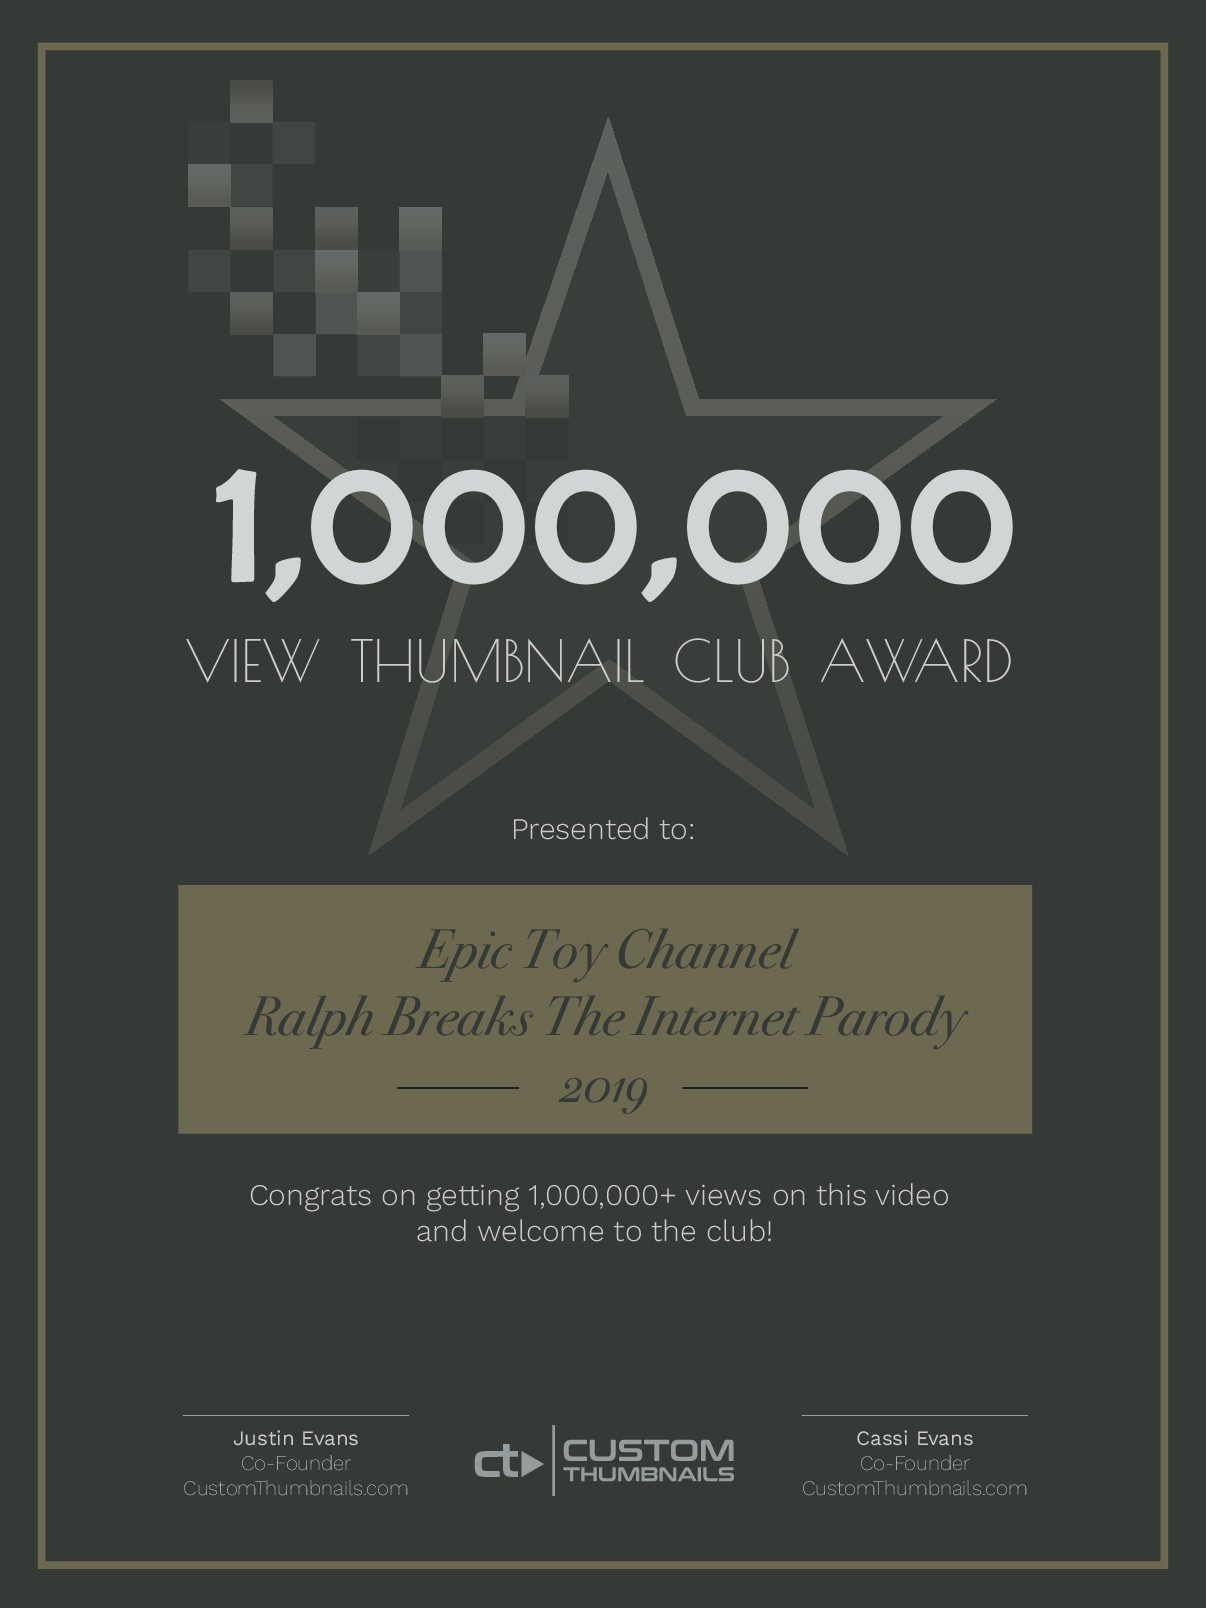 1,000,000 view thumbnail club award